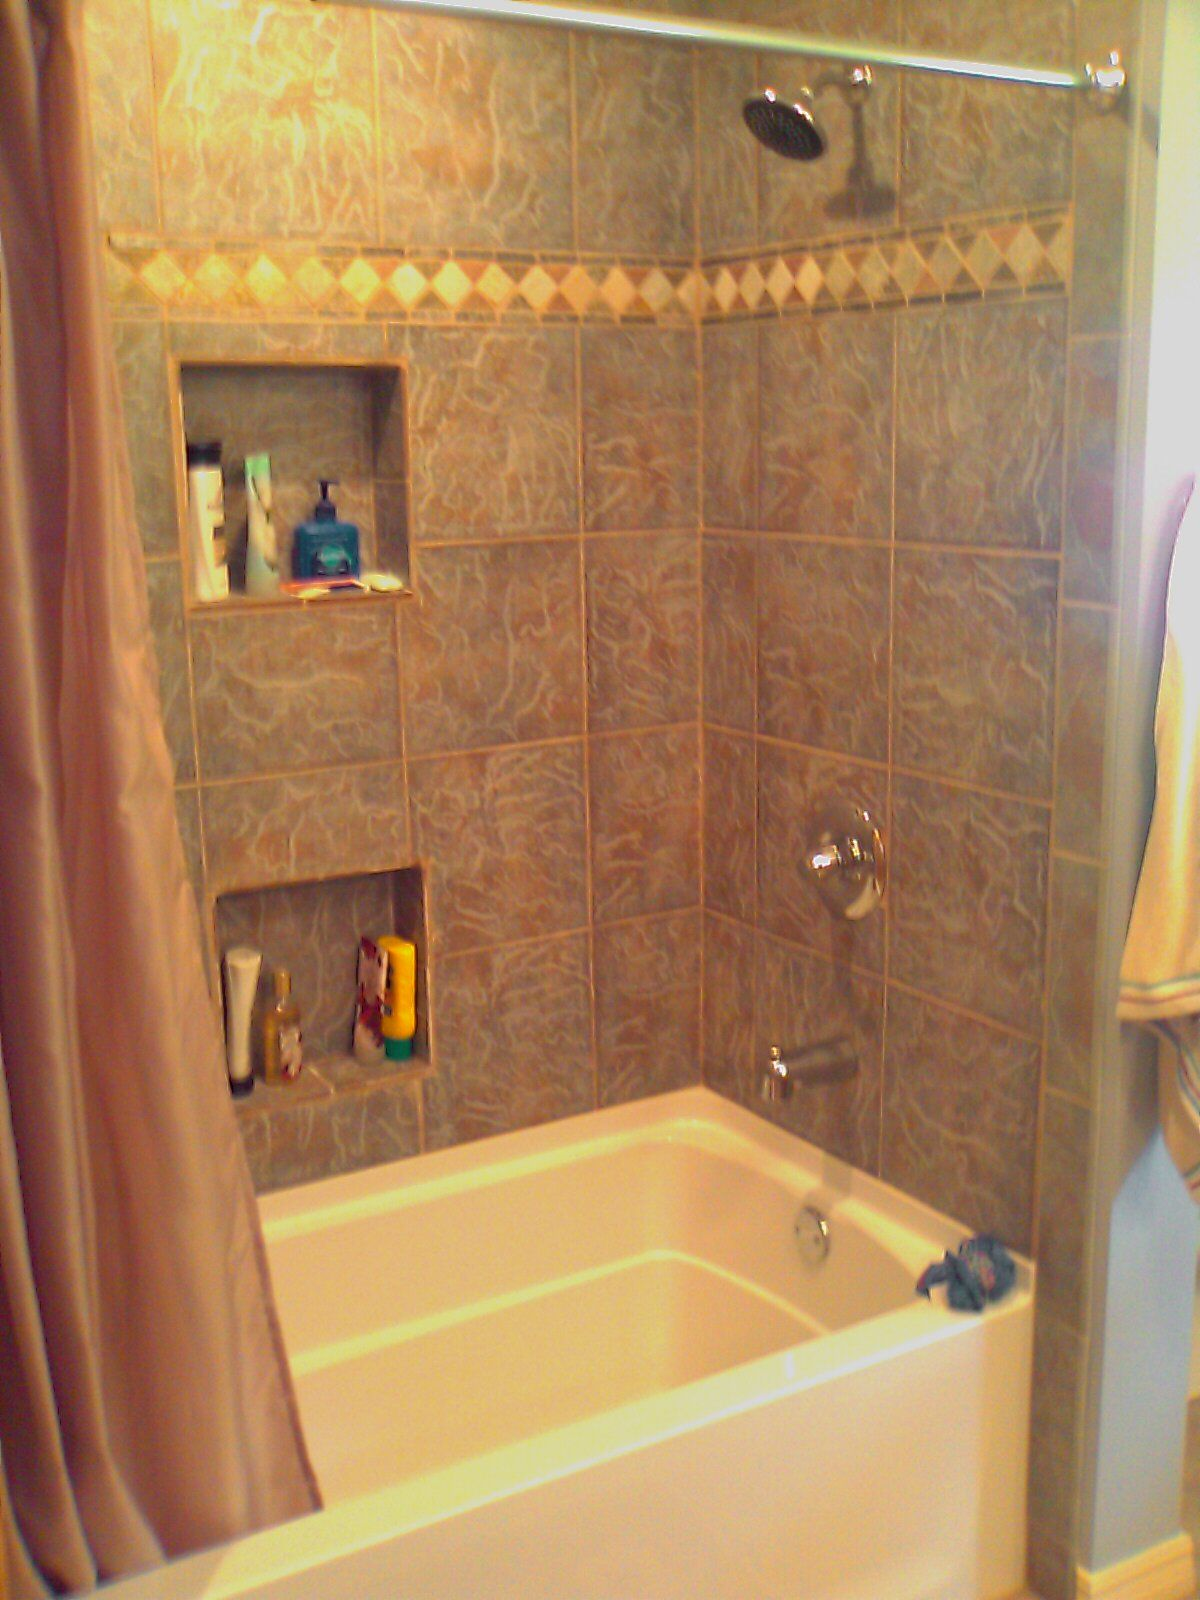 Fiberglass tub with tile surround and shampoo niches for Tub tile surround ideas